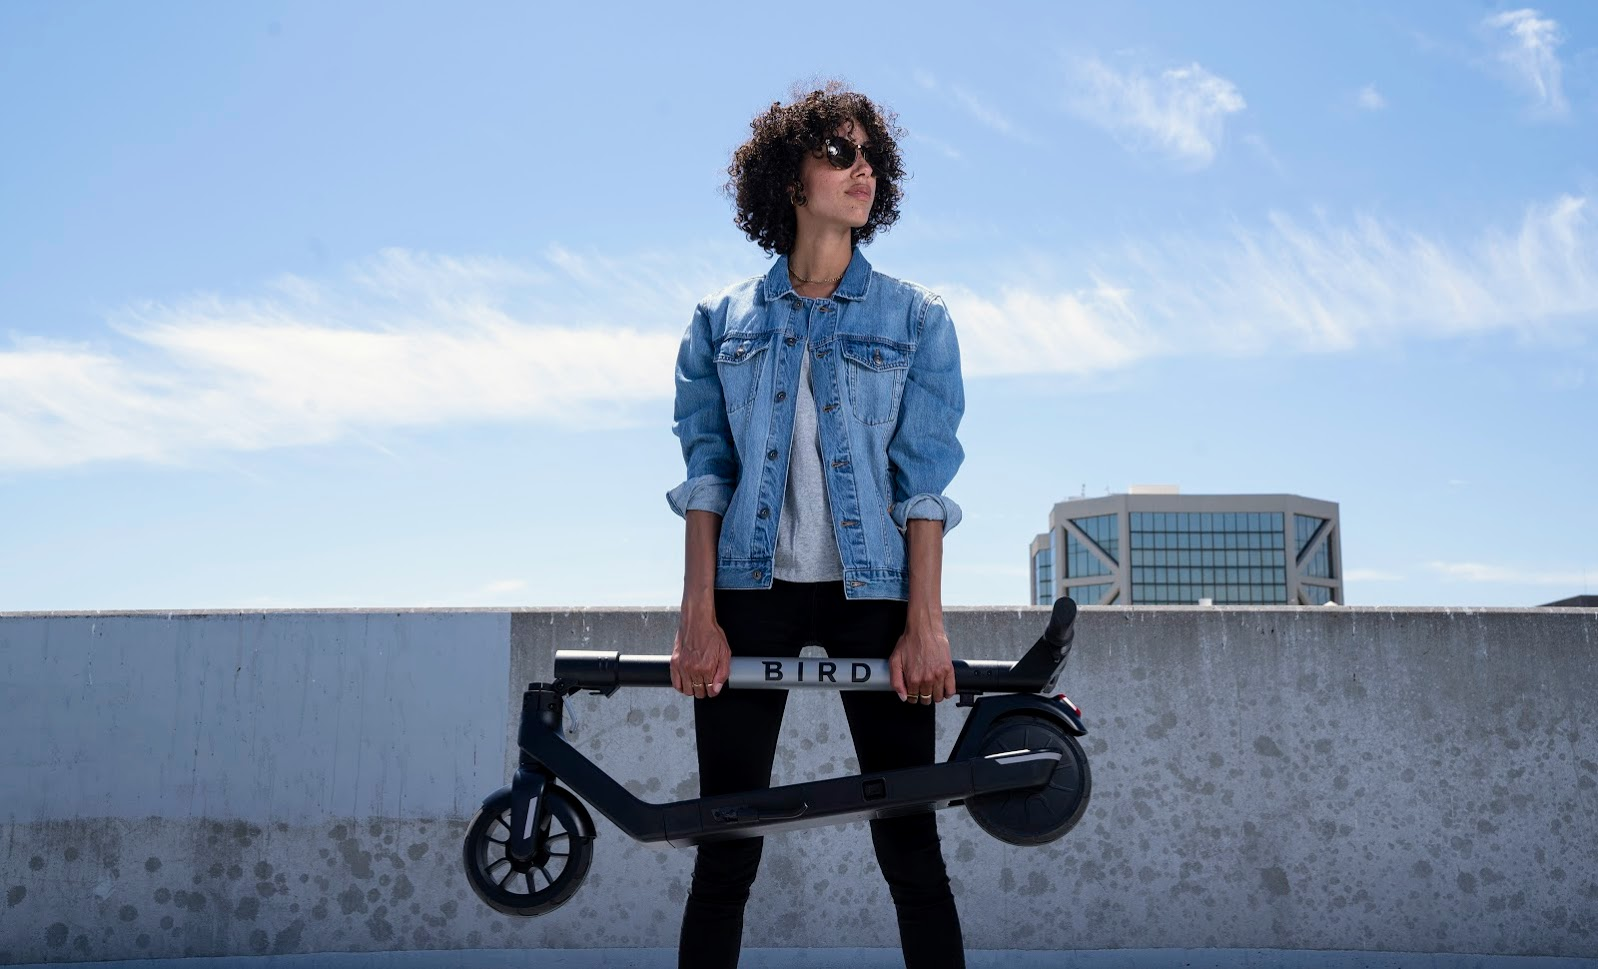 Young woman holding Bird Air electric scooter on a rooftop on a sunny day.